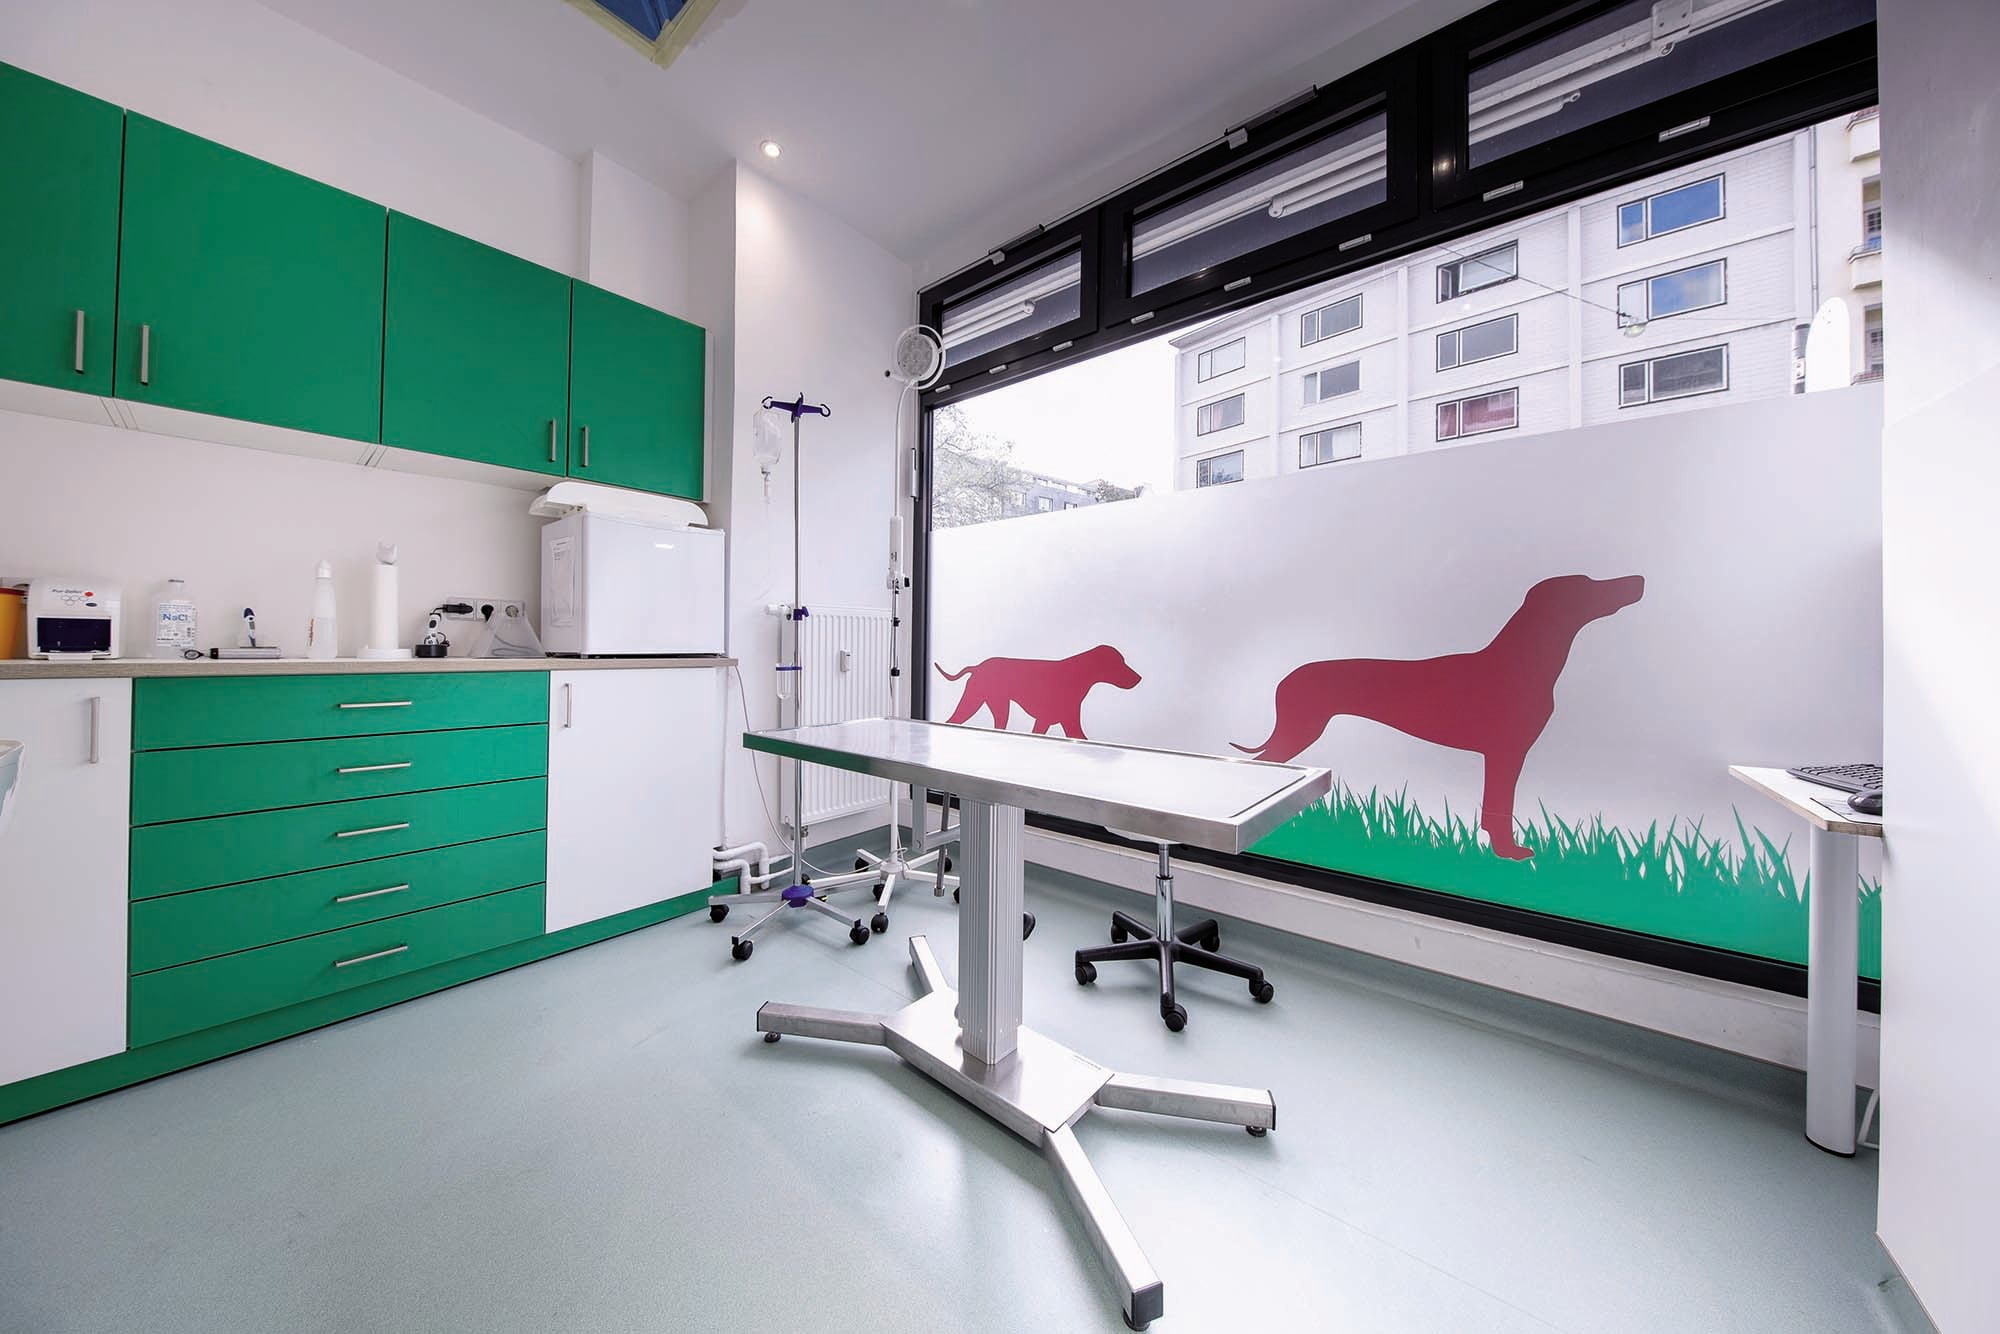 One of the areas inside the Bärenwiese Veterinary Care - Berlin - Germany